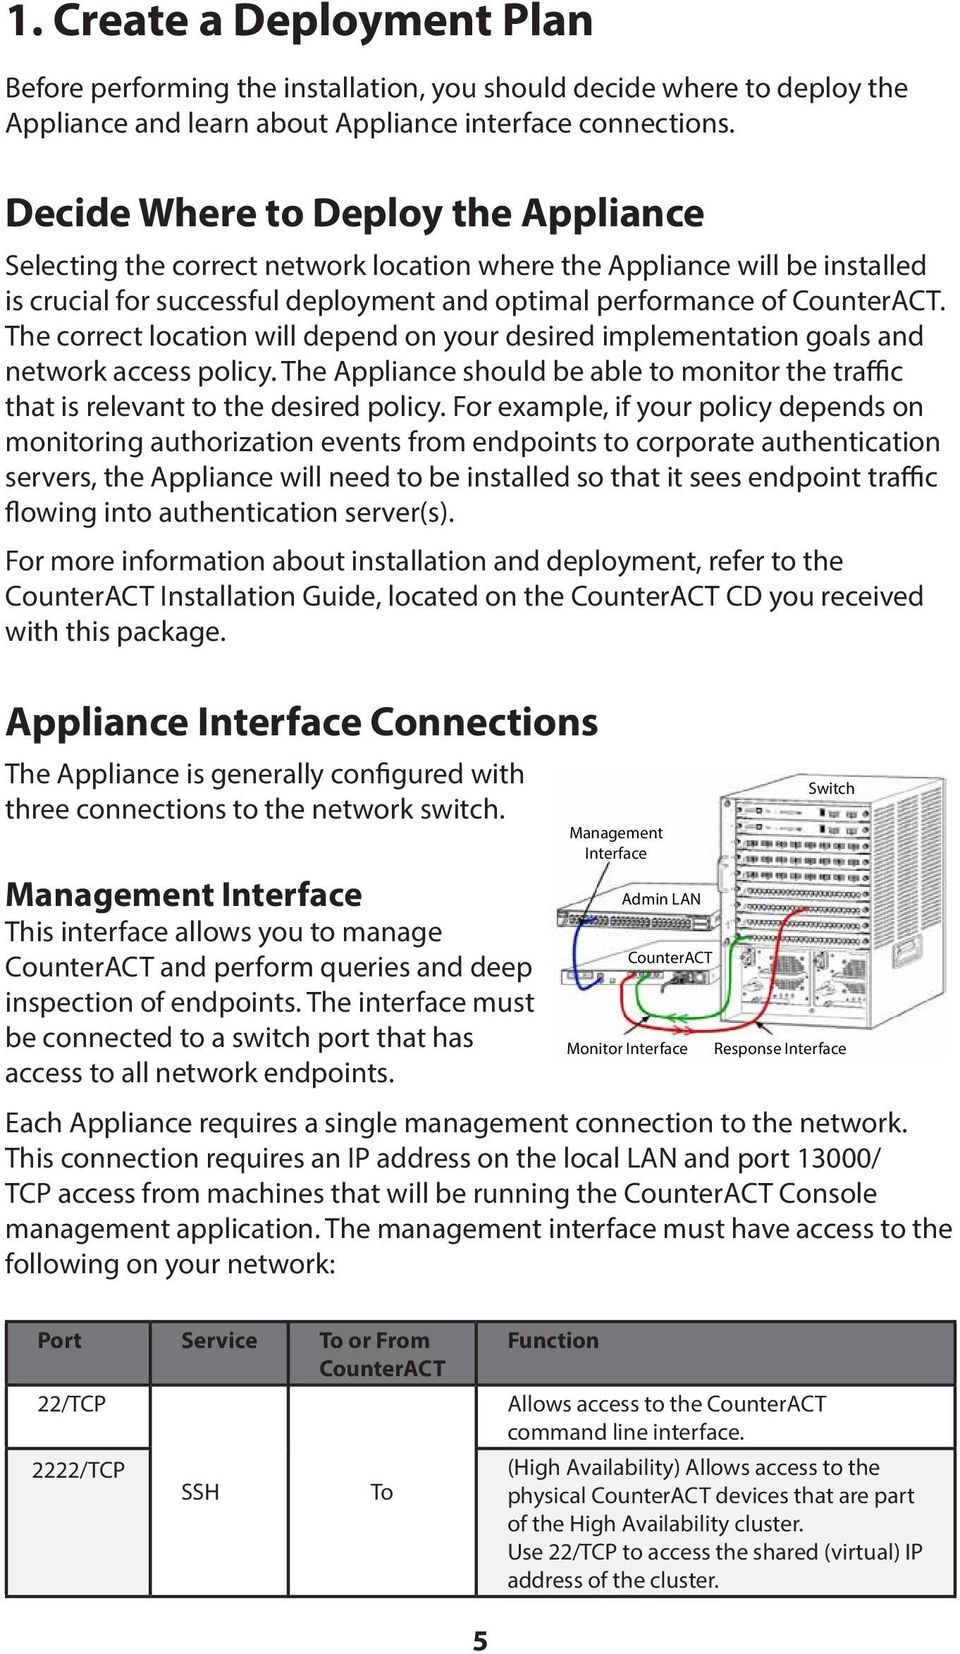 The correct location will depend on your desired implementation goals and network access policy. The Appliance should be able to monitor the traffic that is relevant to the desired policy.